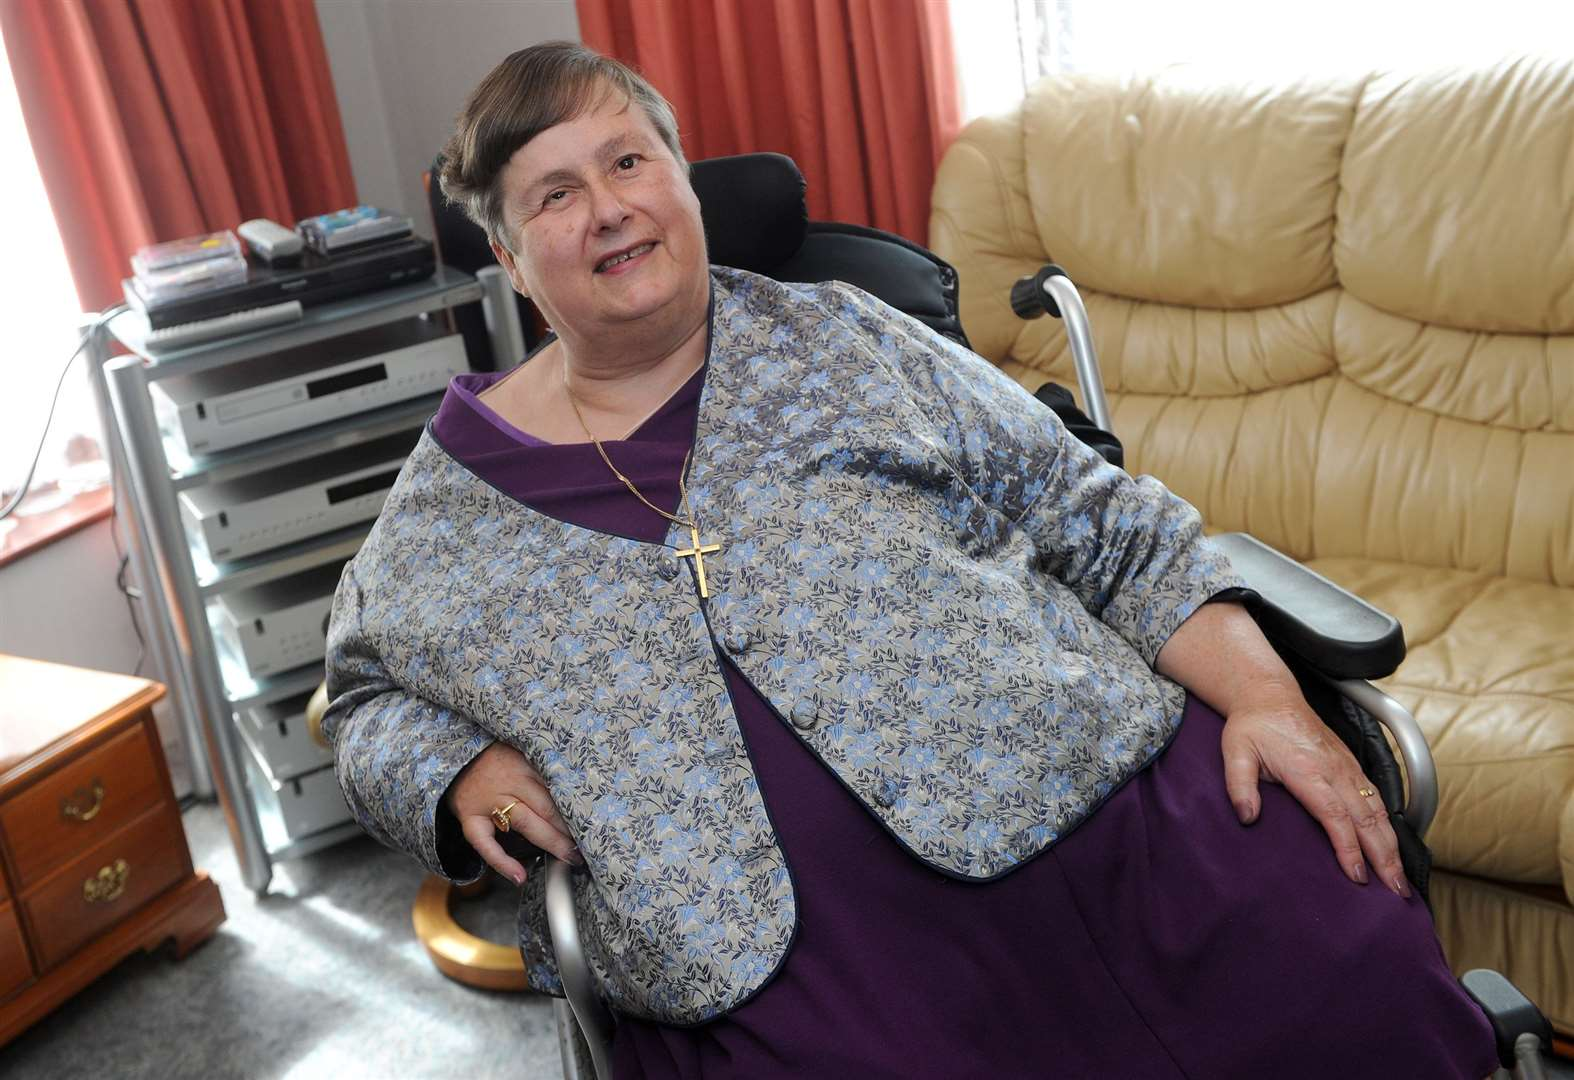 Disabled Sudbury woman angered after losing access to free podiatry treatment